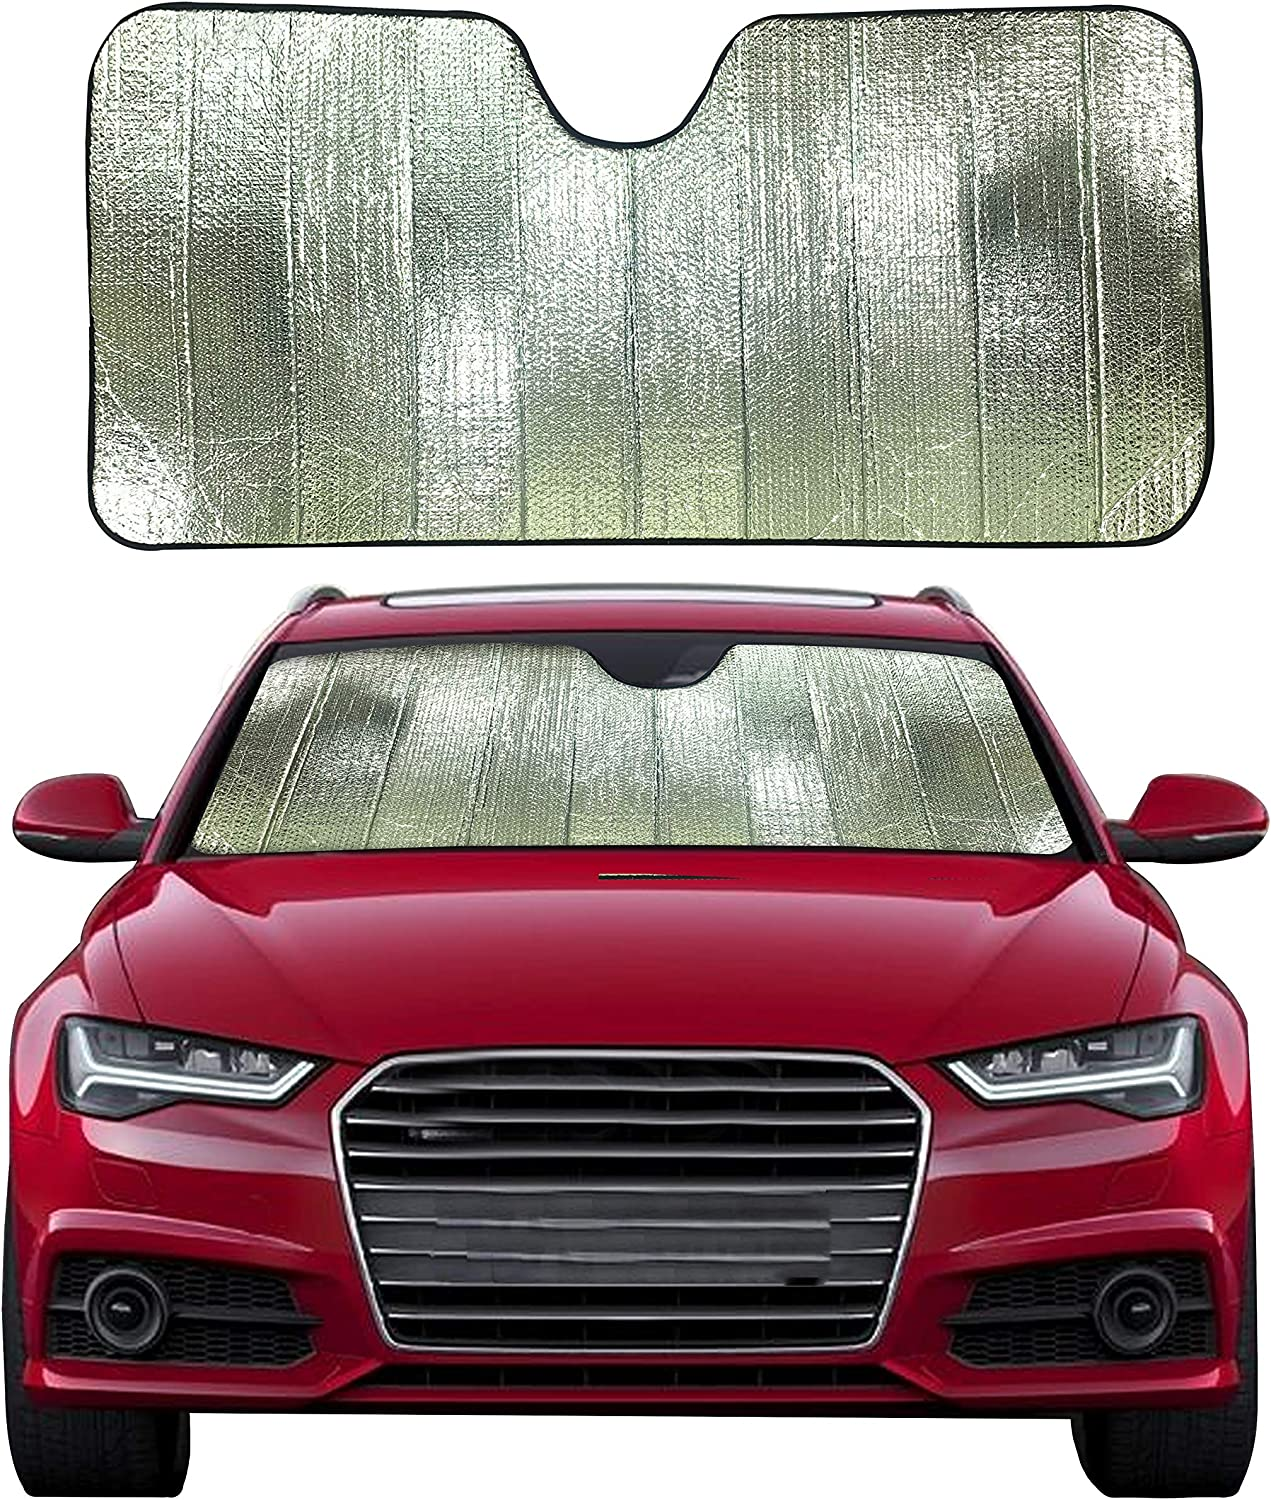 """EcoNour Accordion Foldable Windshield Sunshade for Car   Blocks Harmful UV Rays   Foldable Windshield Sunshade Keeps Your Car Cool   Sun Glare Protection   Fits Most of The Car   Large (56"""" x 28"""")"""